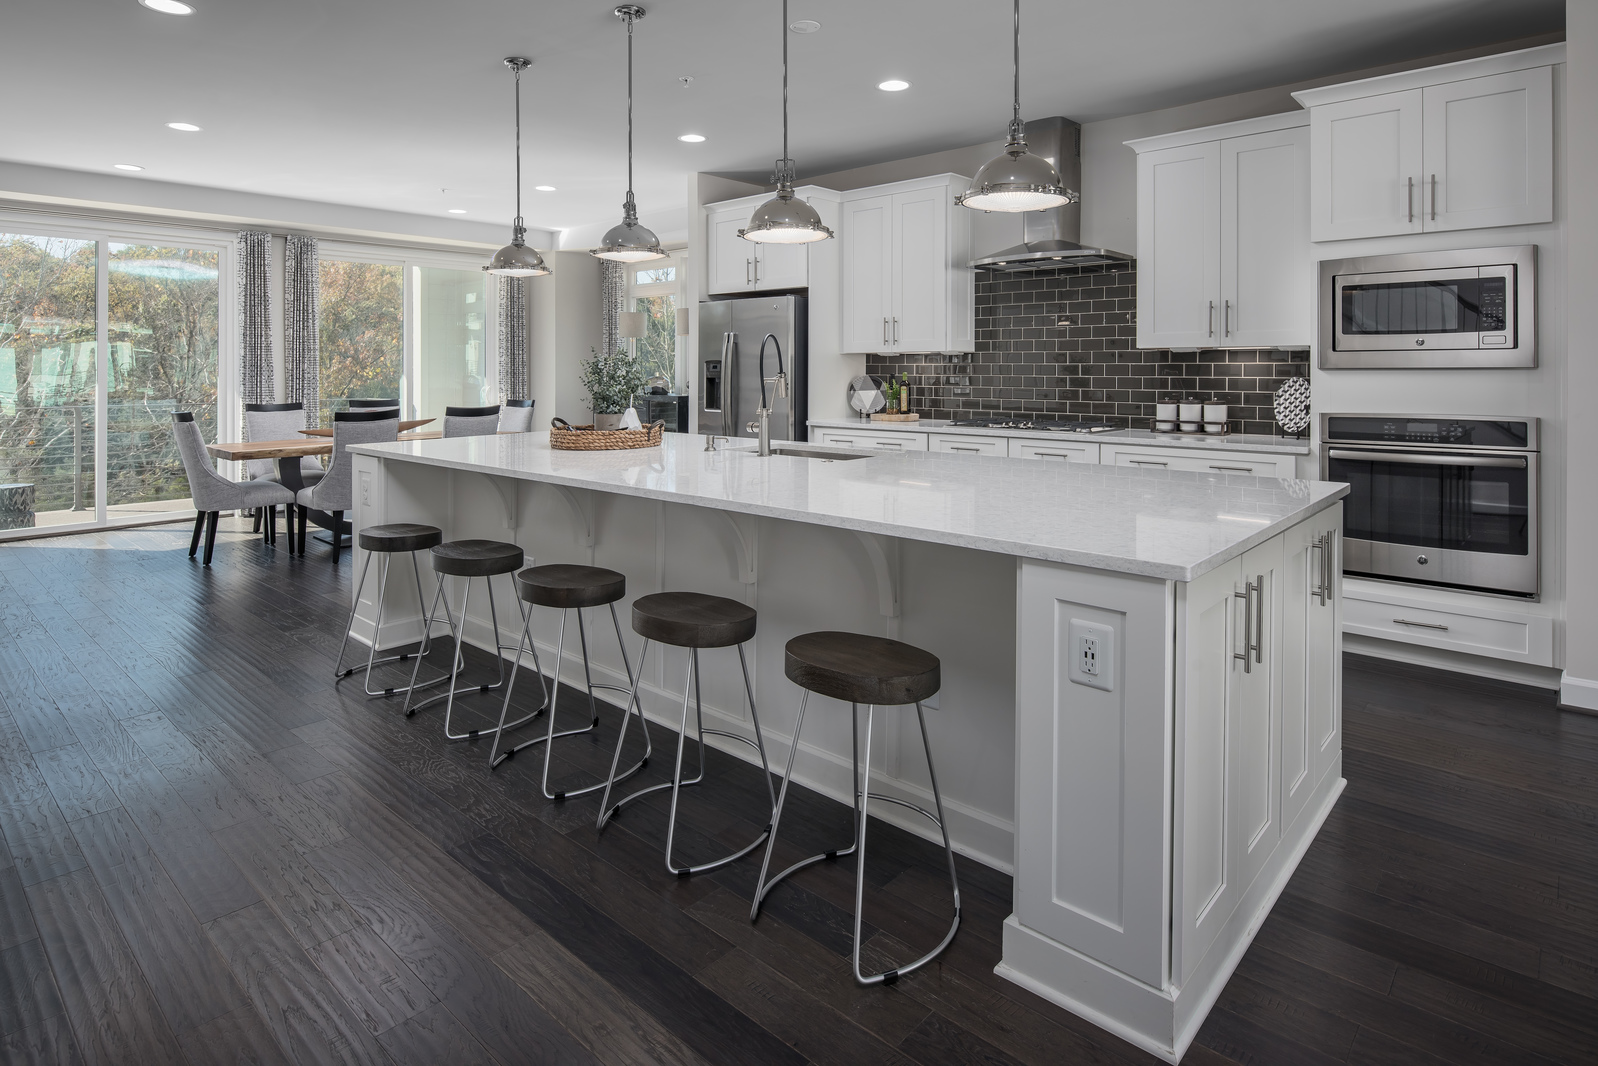 Our designs offer luxury around every corner, like included quartz countertops and hardwood flooring.